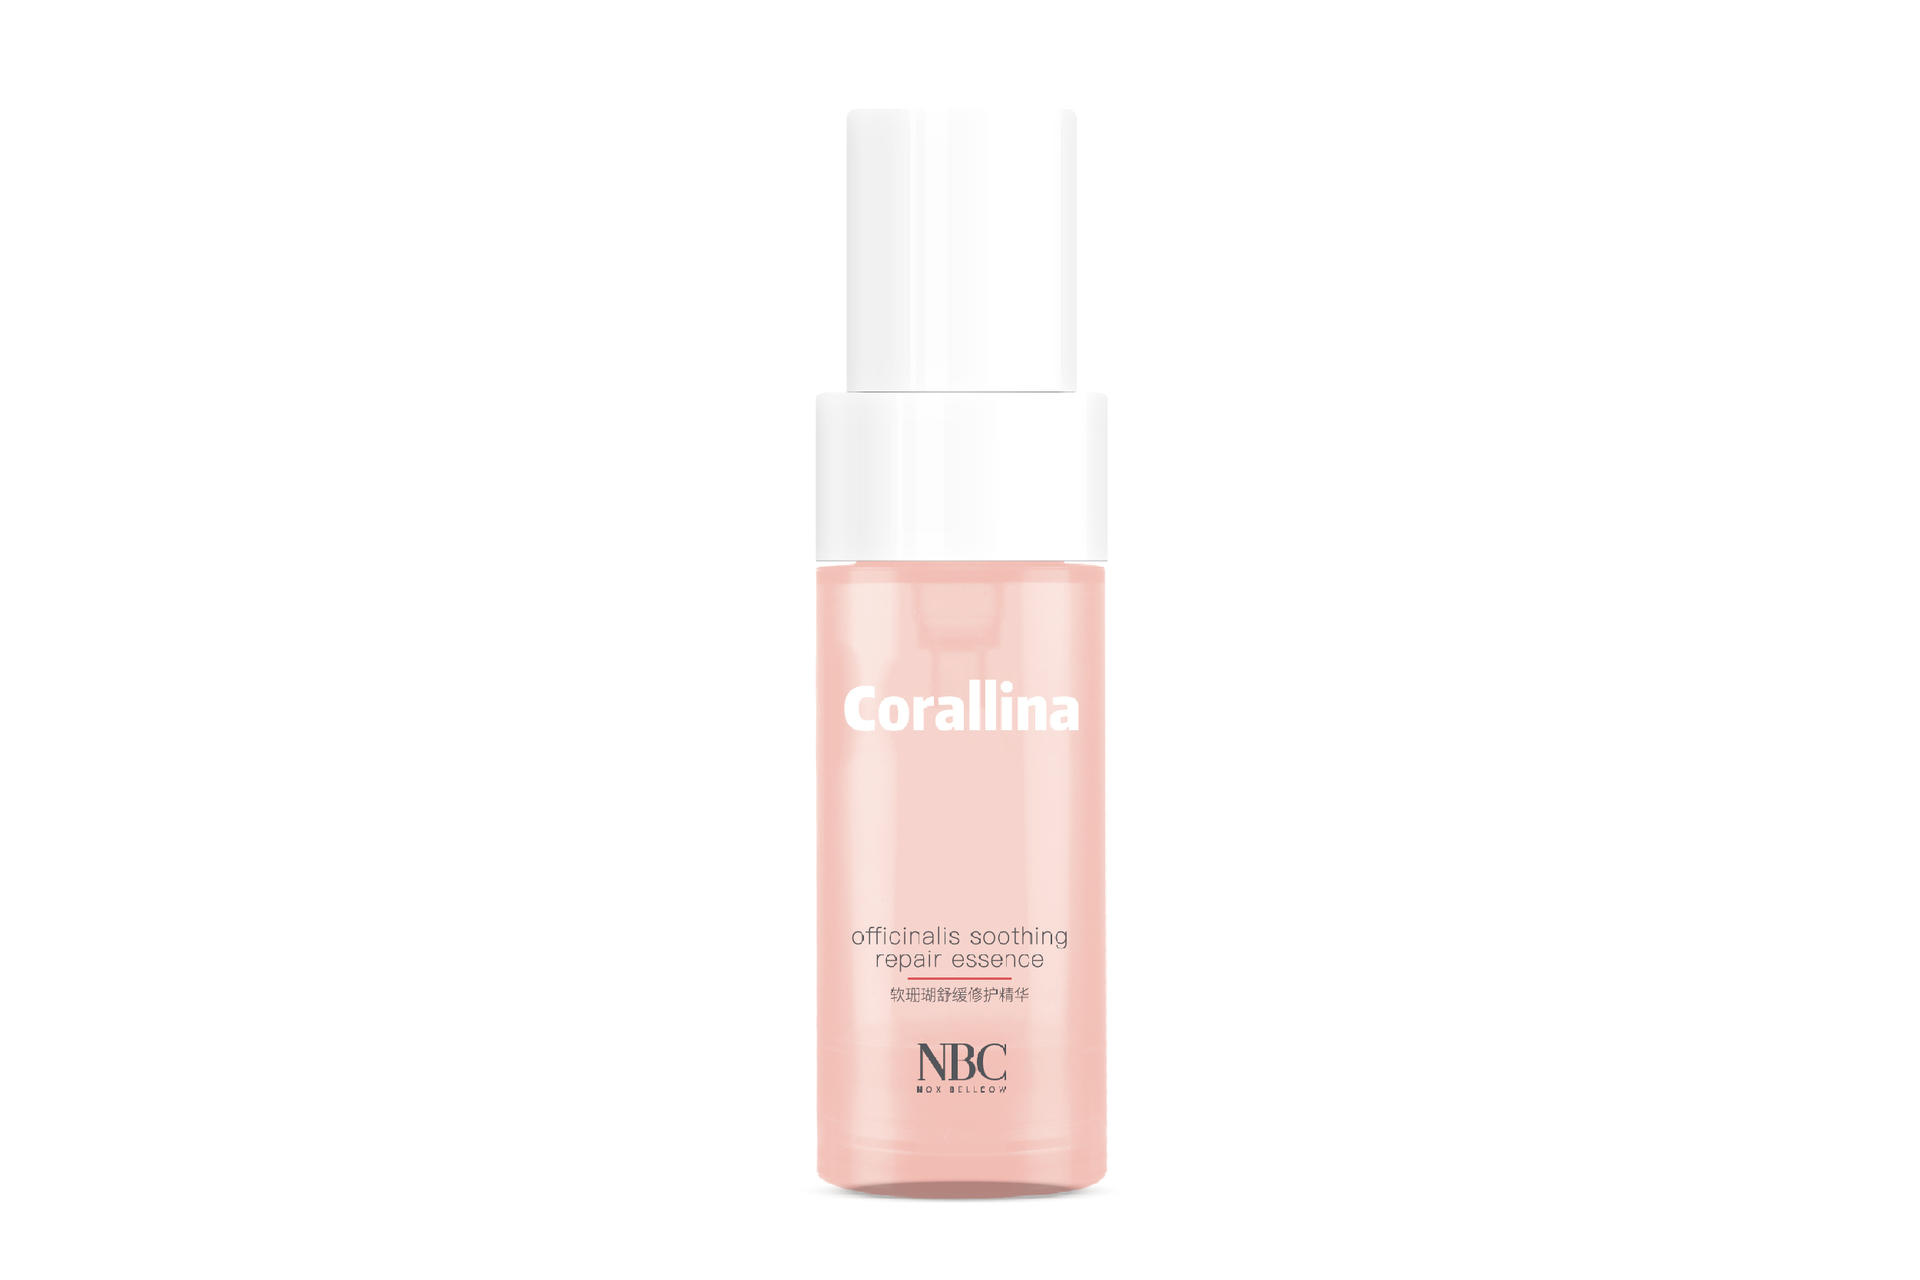 Officinalis Soothing Repair Essence